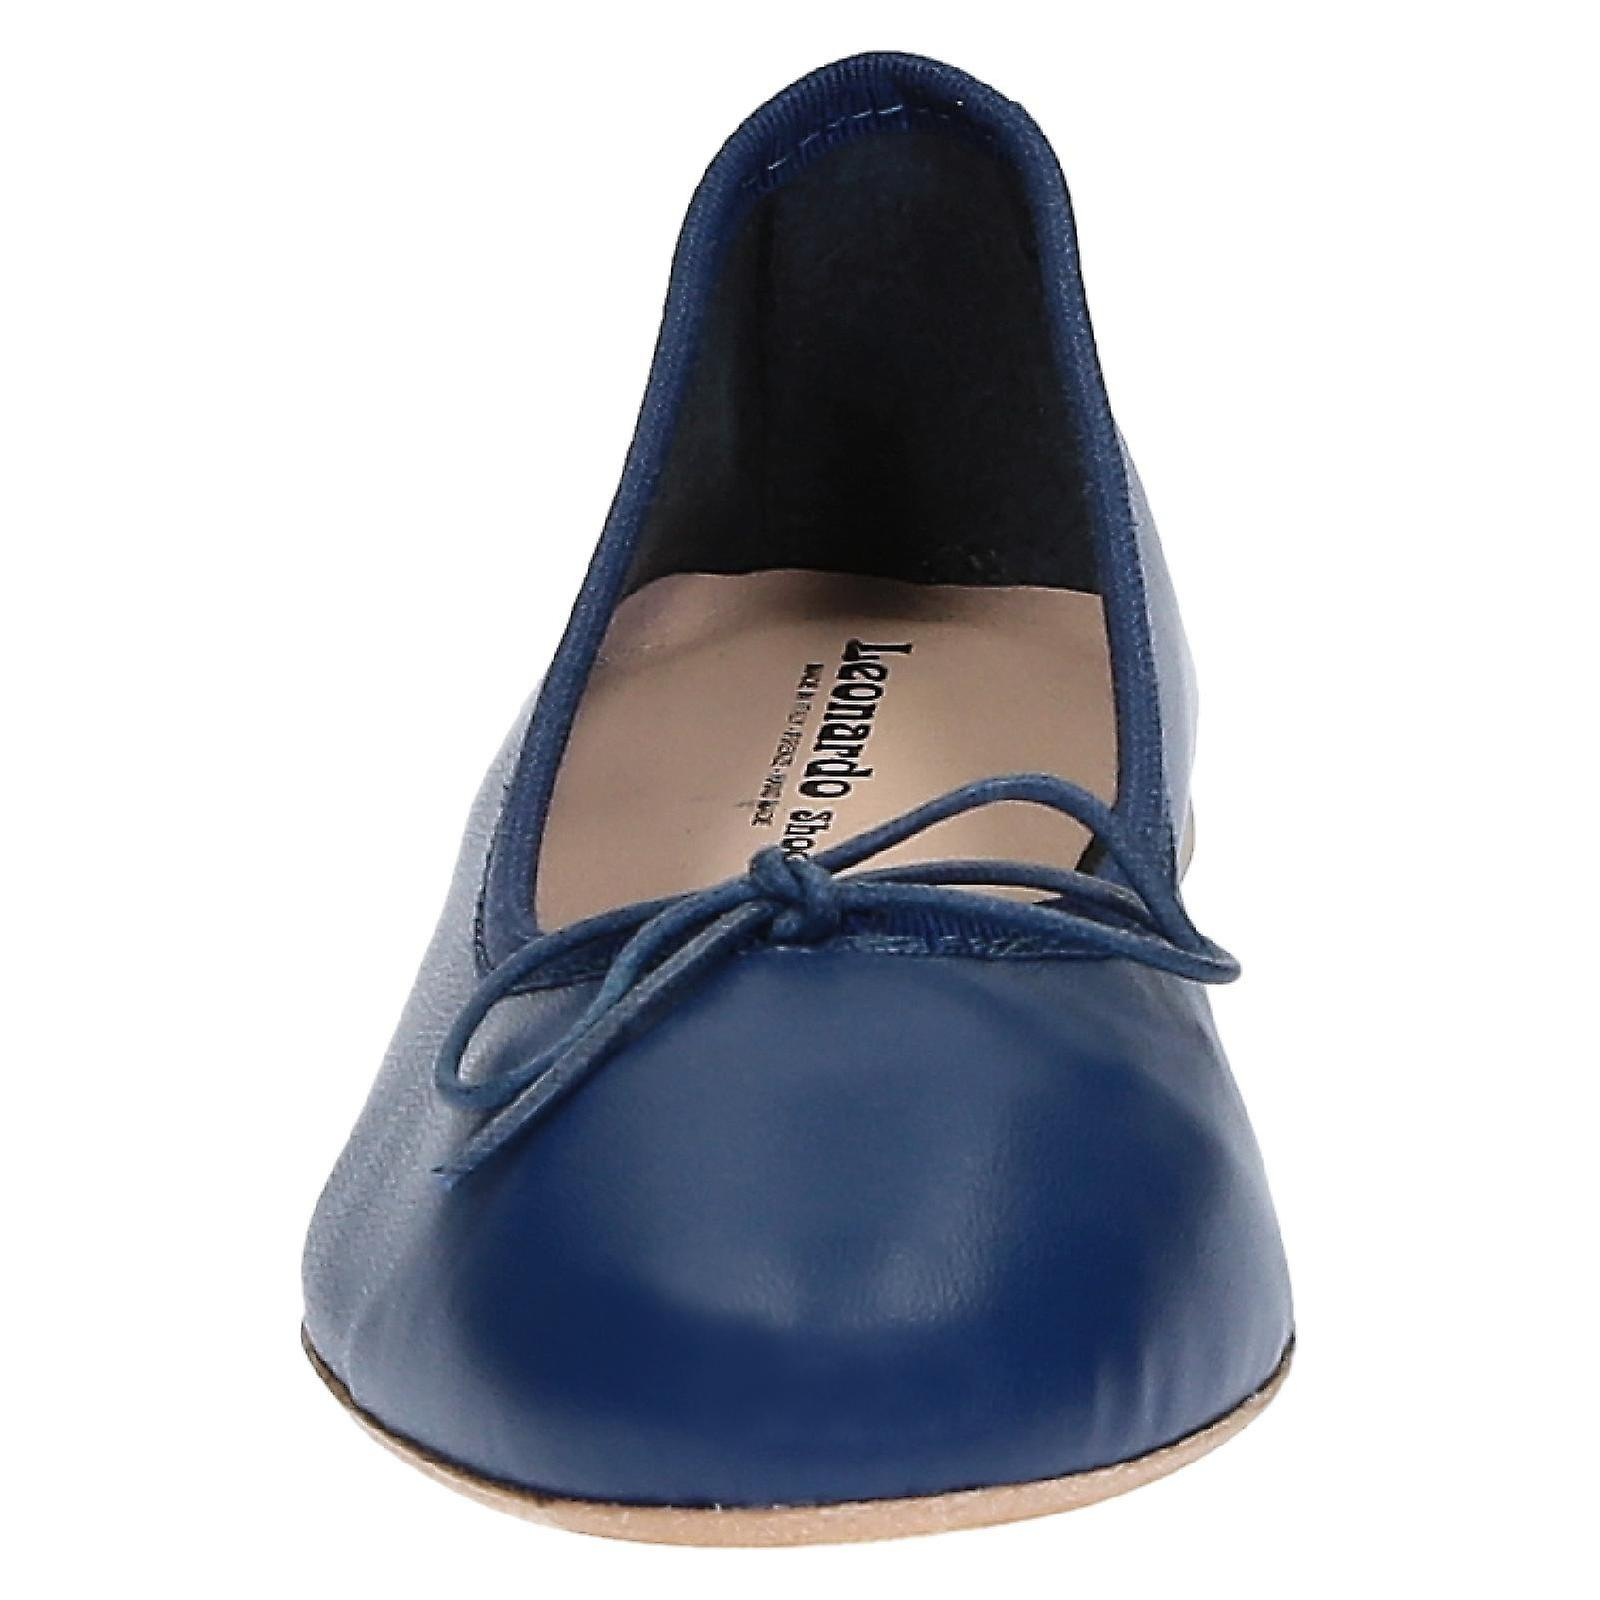 Handmade flats ballets shoes in blue soft leather